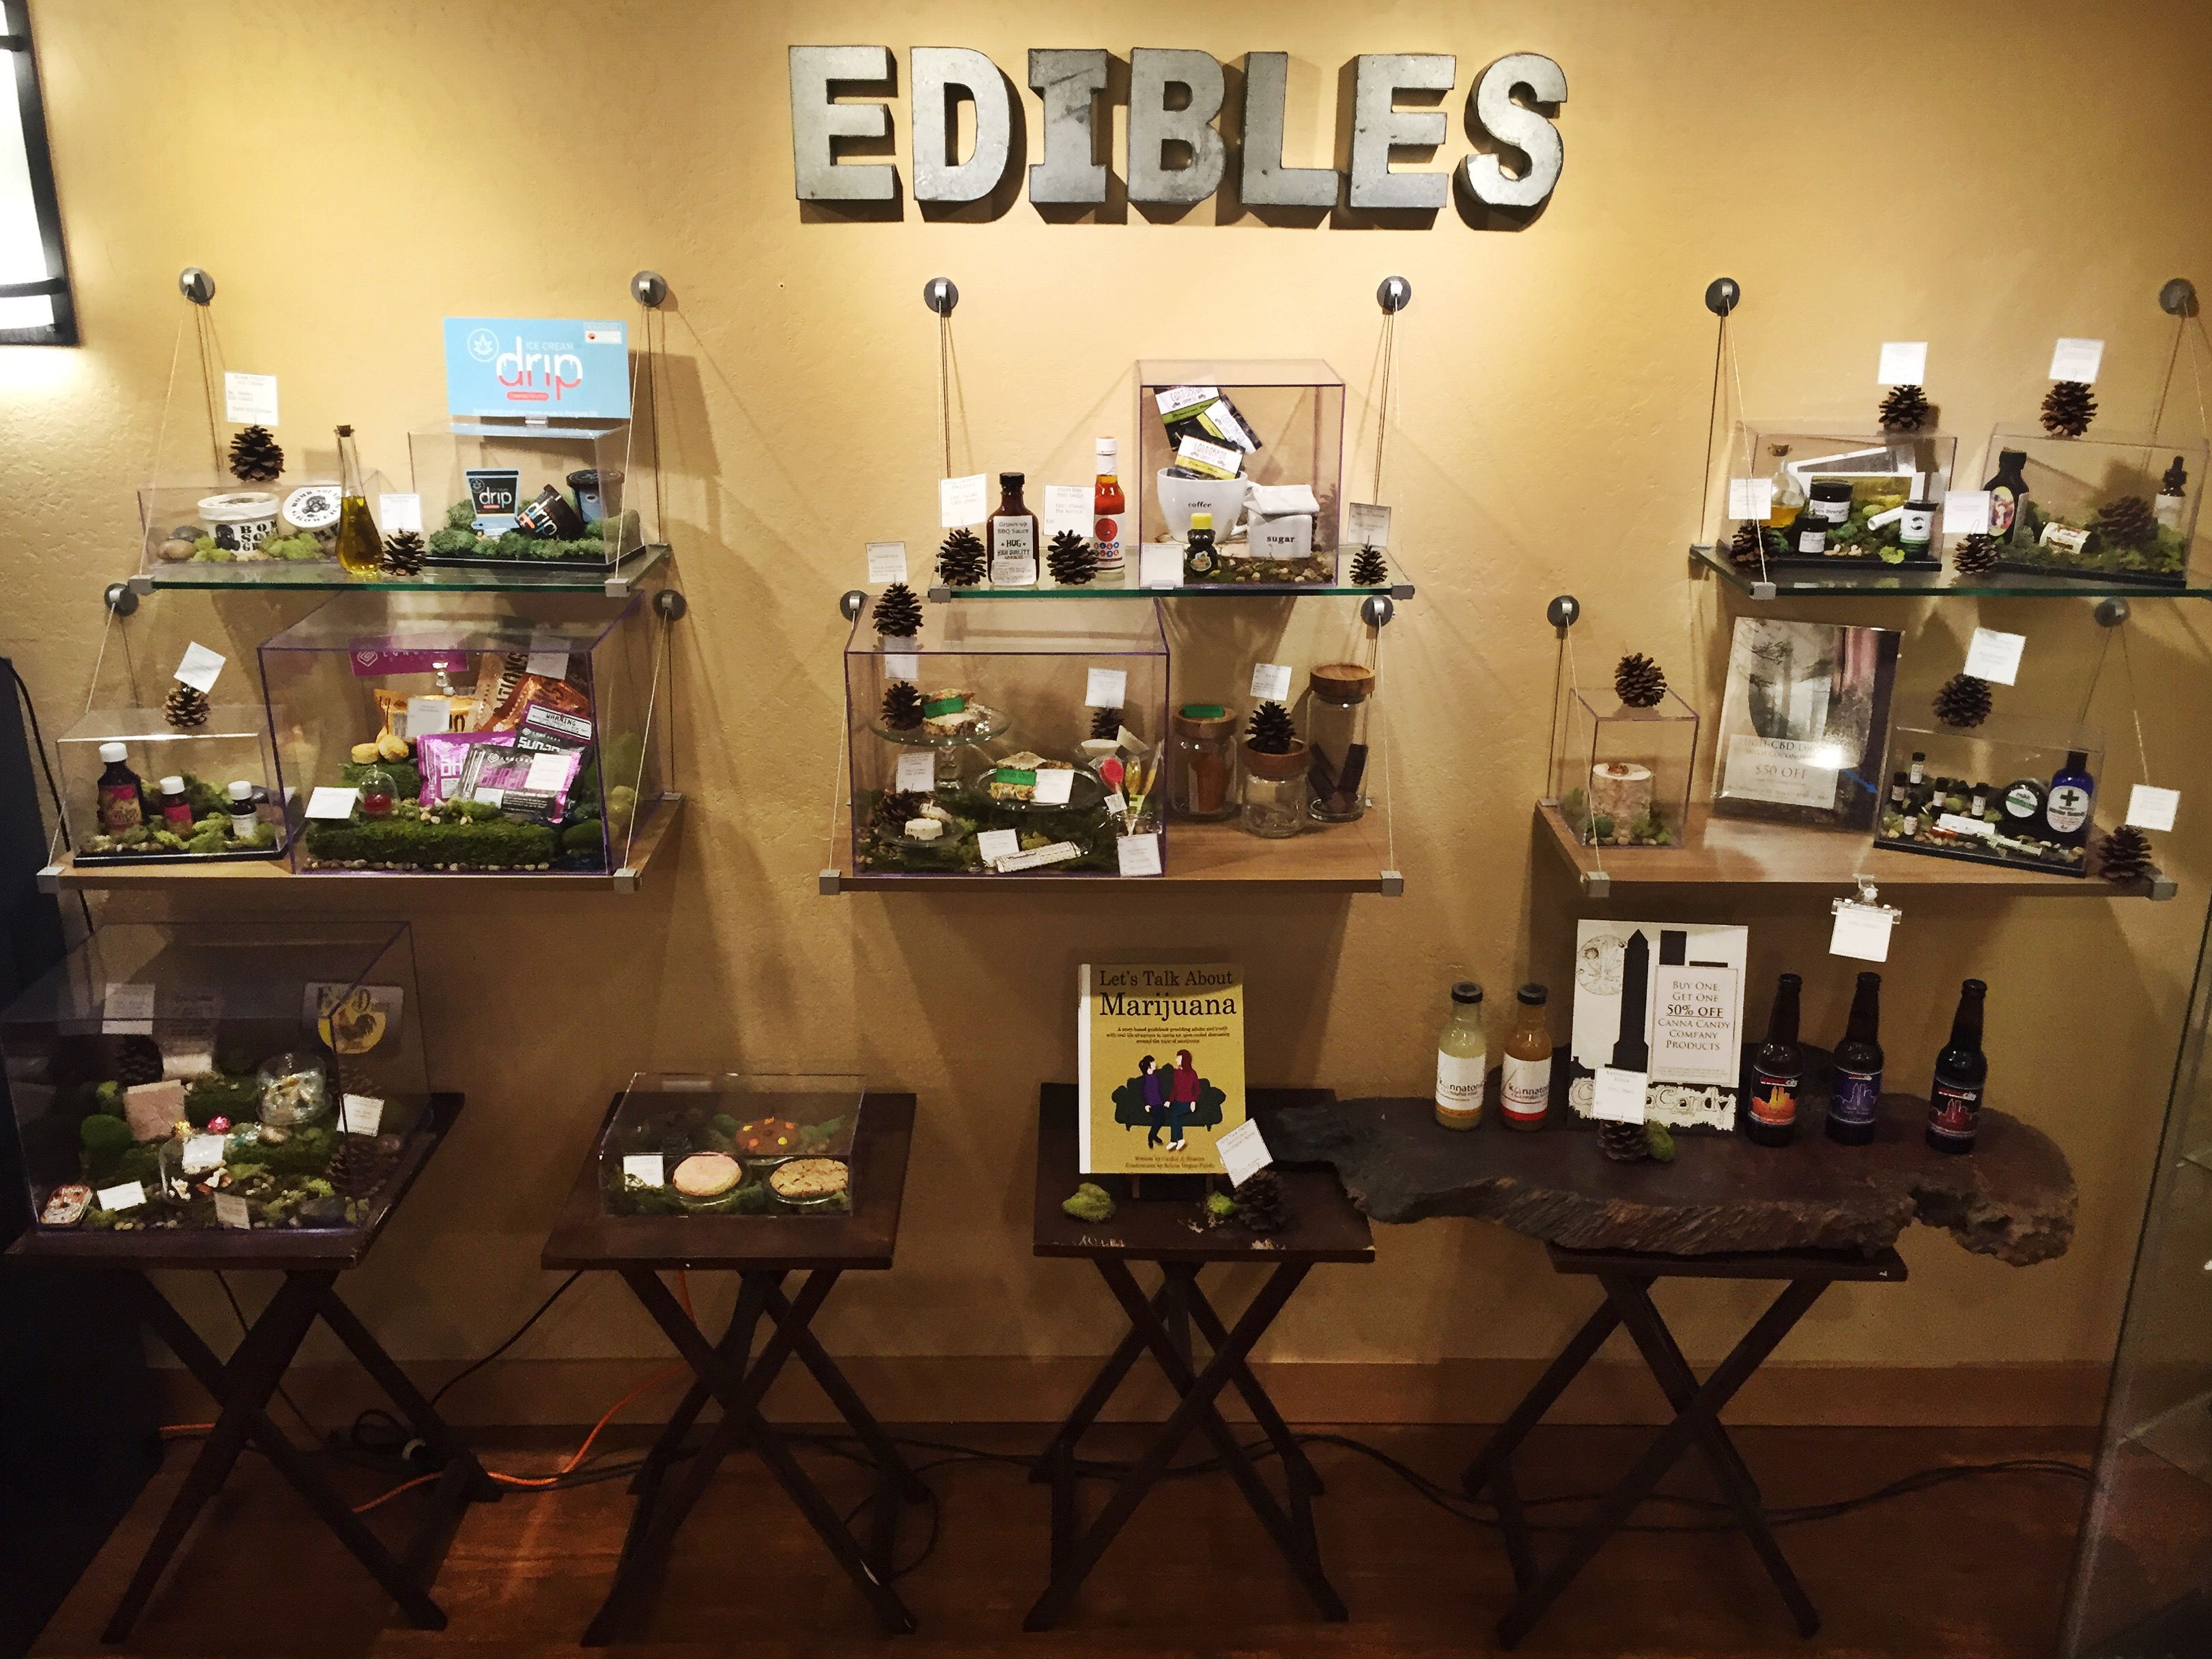 High Quality Compassion medical marijuana and recreational cannabis dispensary in Corvallis, Oregon